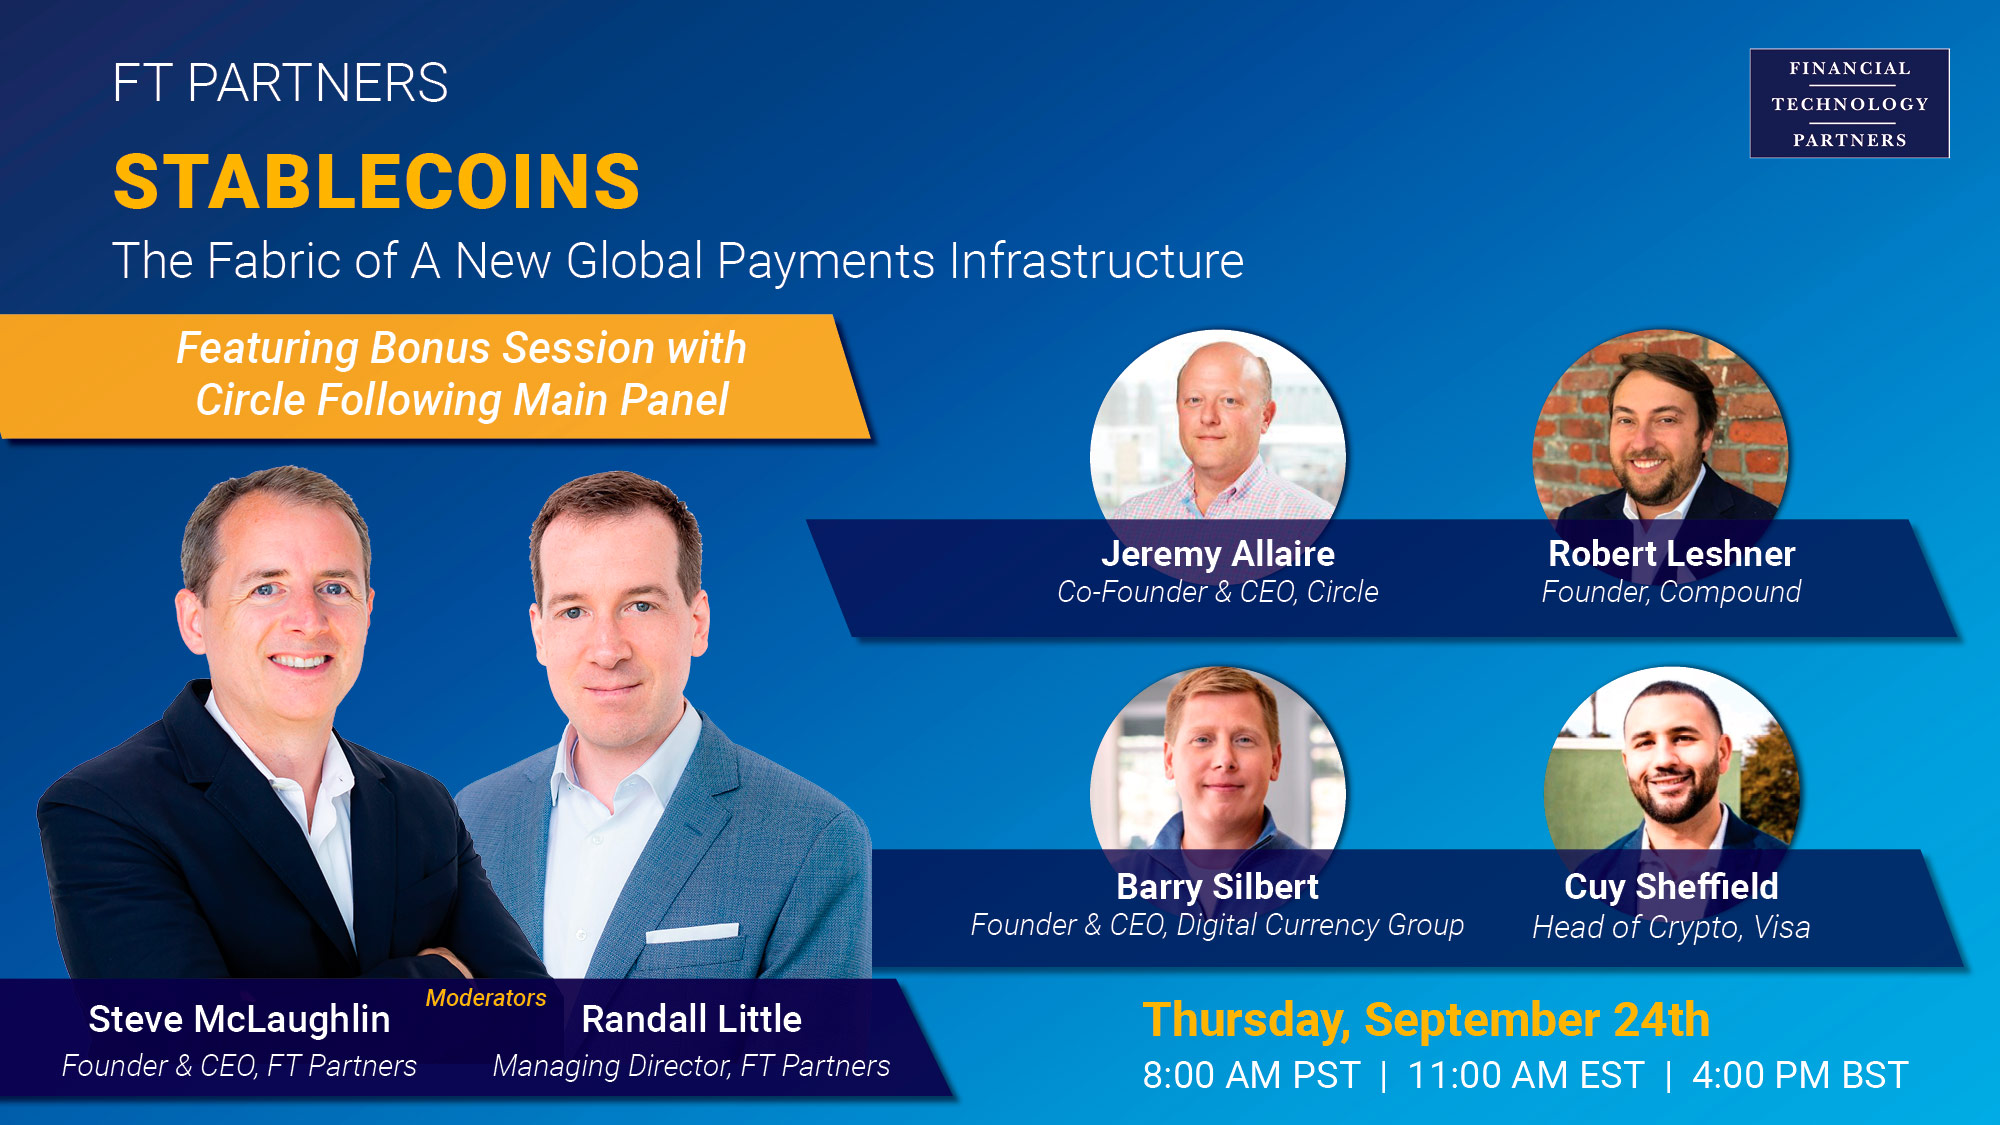 The Fabric of a New Global Payments Infrastructure